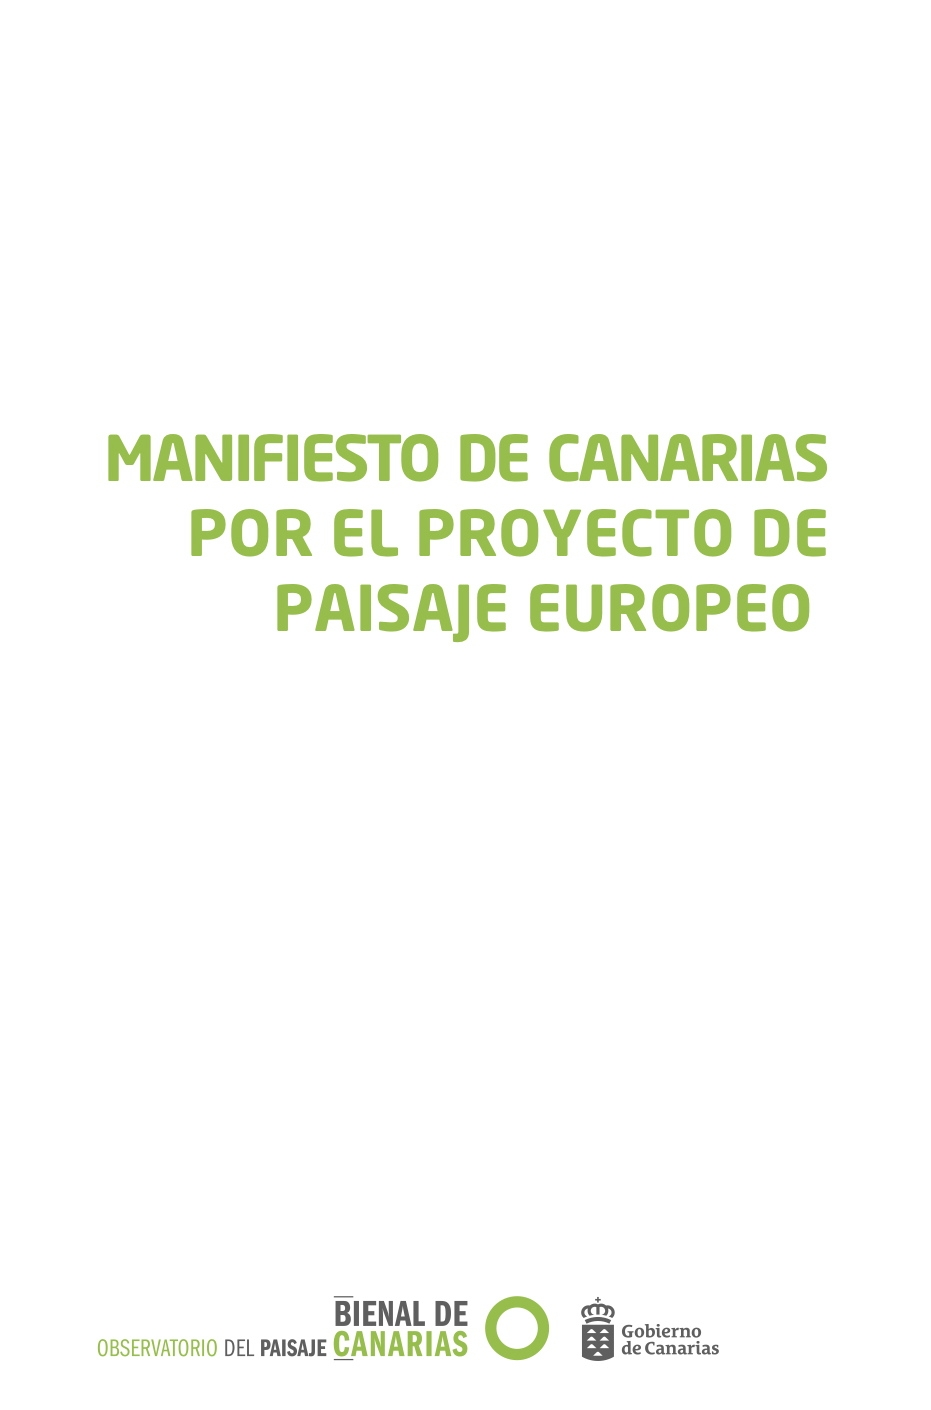 Manifesto of the Canary Island for the European Landscape Projecto